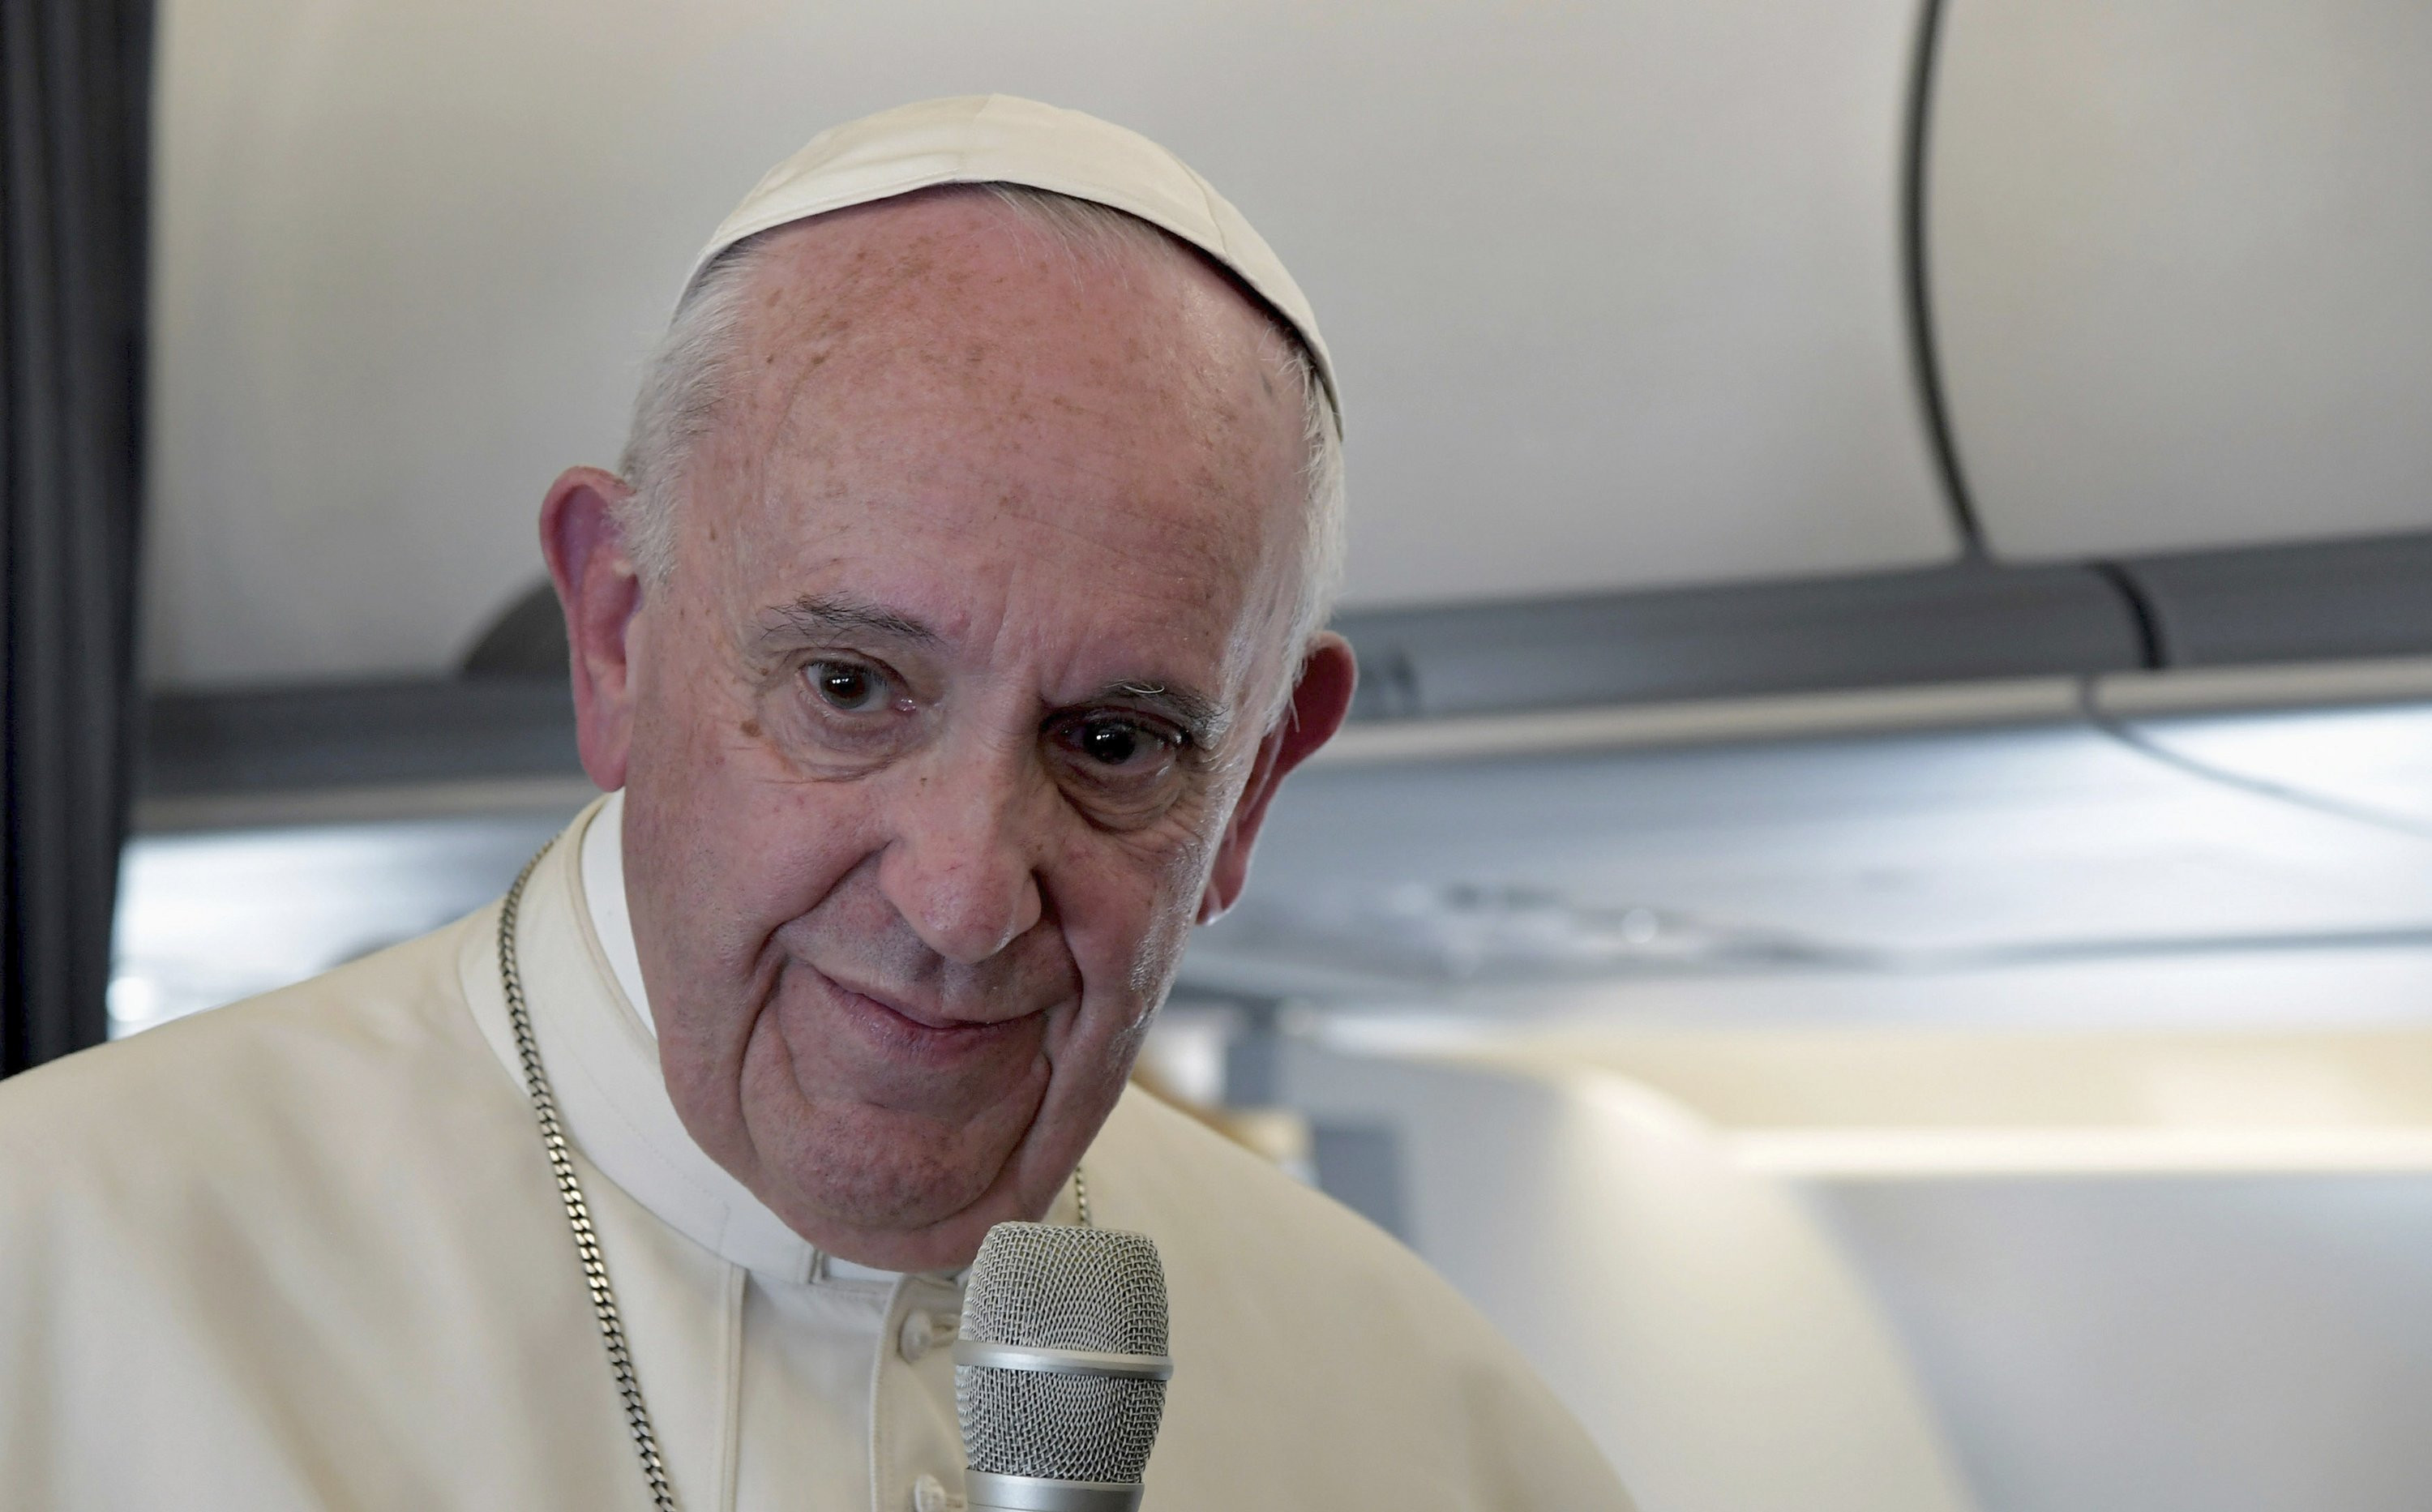 Pope says he'll seek common ground with Trump, won't preach